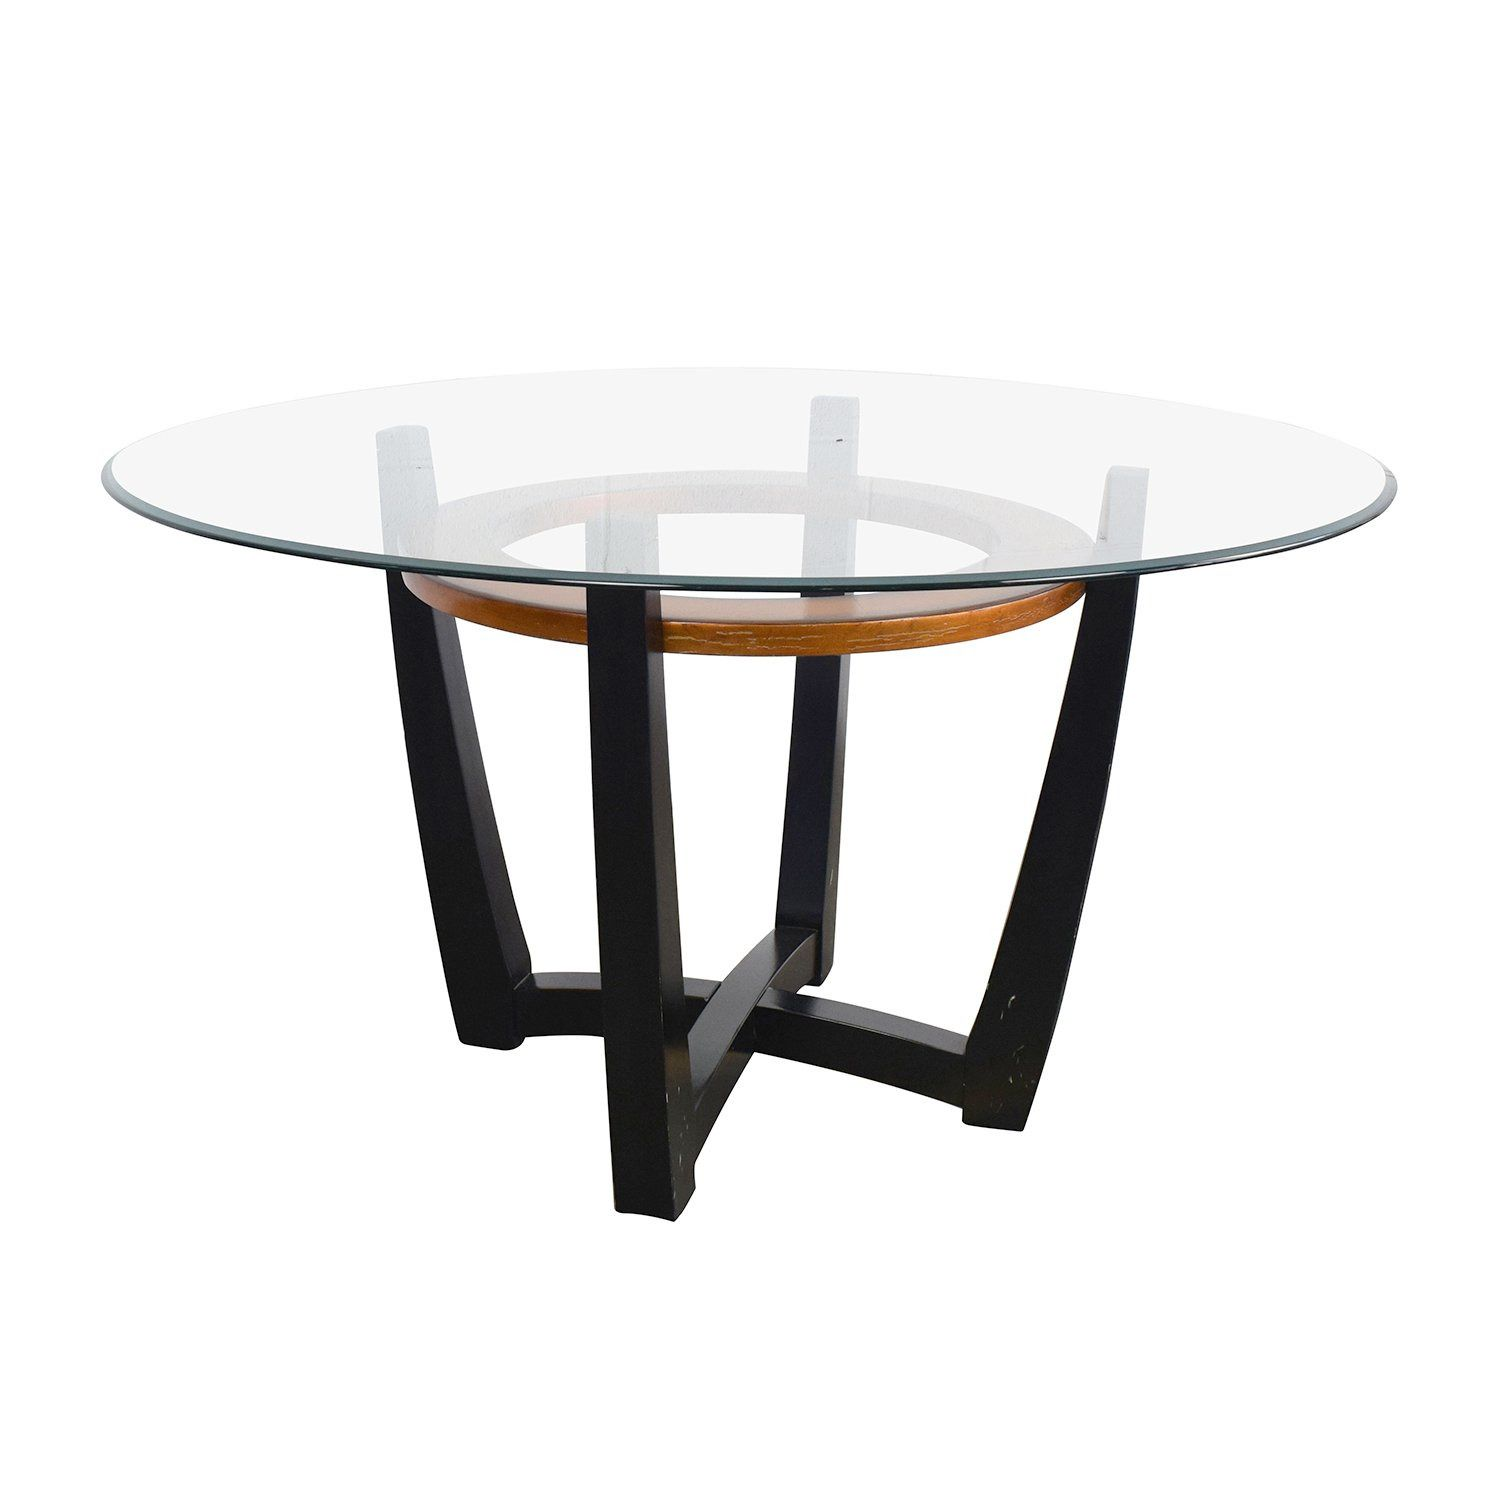 100 Elation Round End Table Best Way To Paint Wood Furniture Check More At Http Coffee Table Contemporary Living Room Furniture Living Room Sets Furniture [ 1500 x 1500 Pixel ]